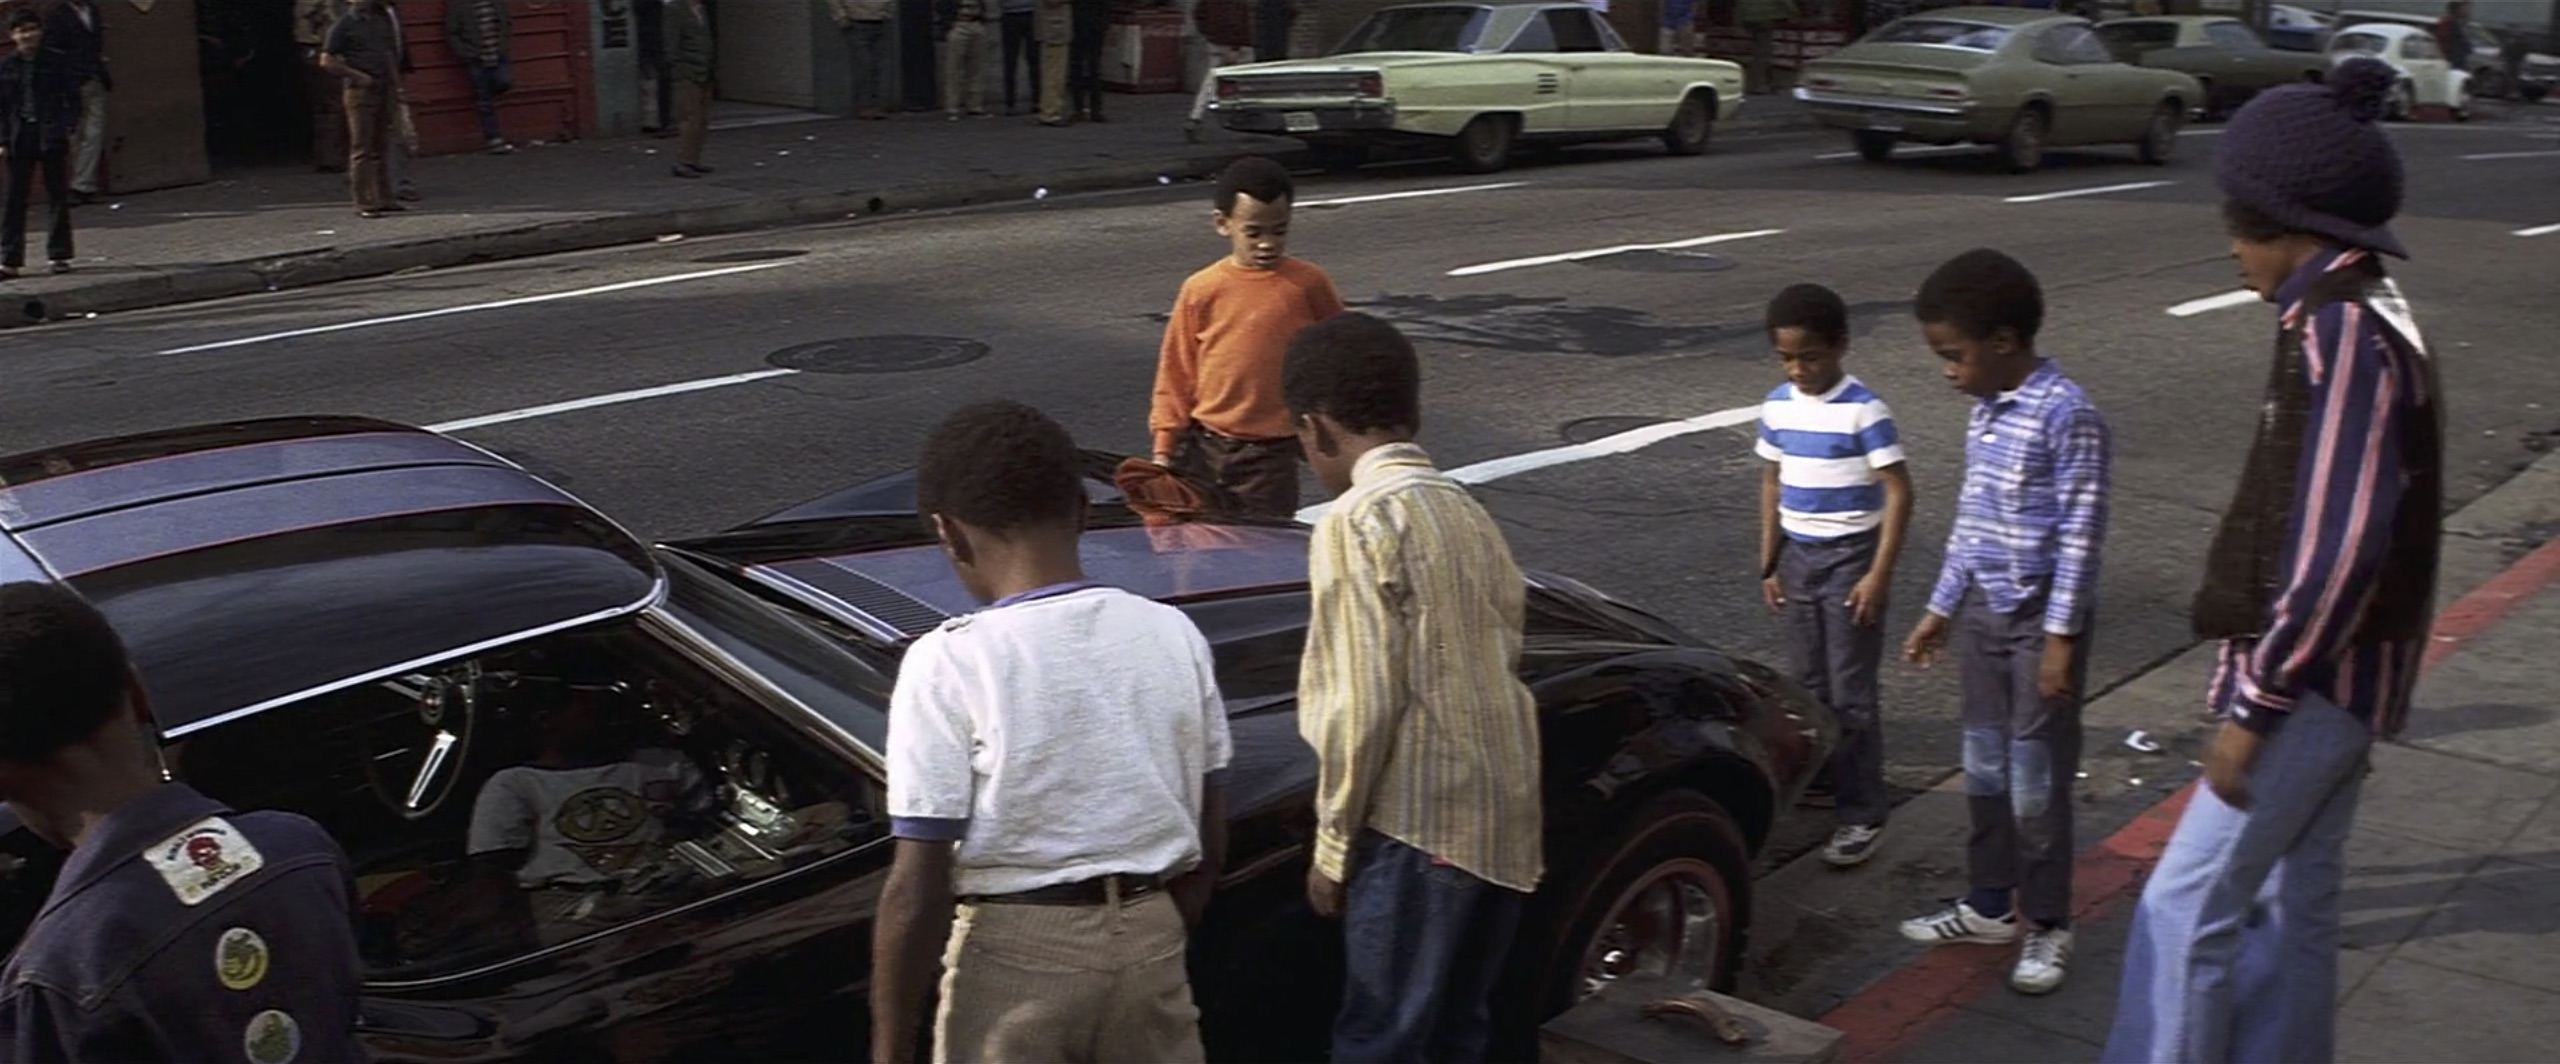 kids checking out Cleopatra Jones Chevy Corvette